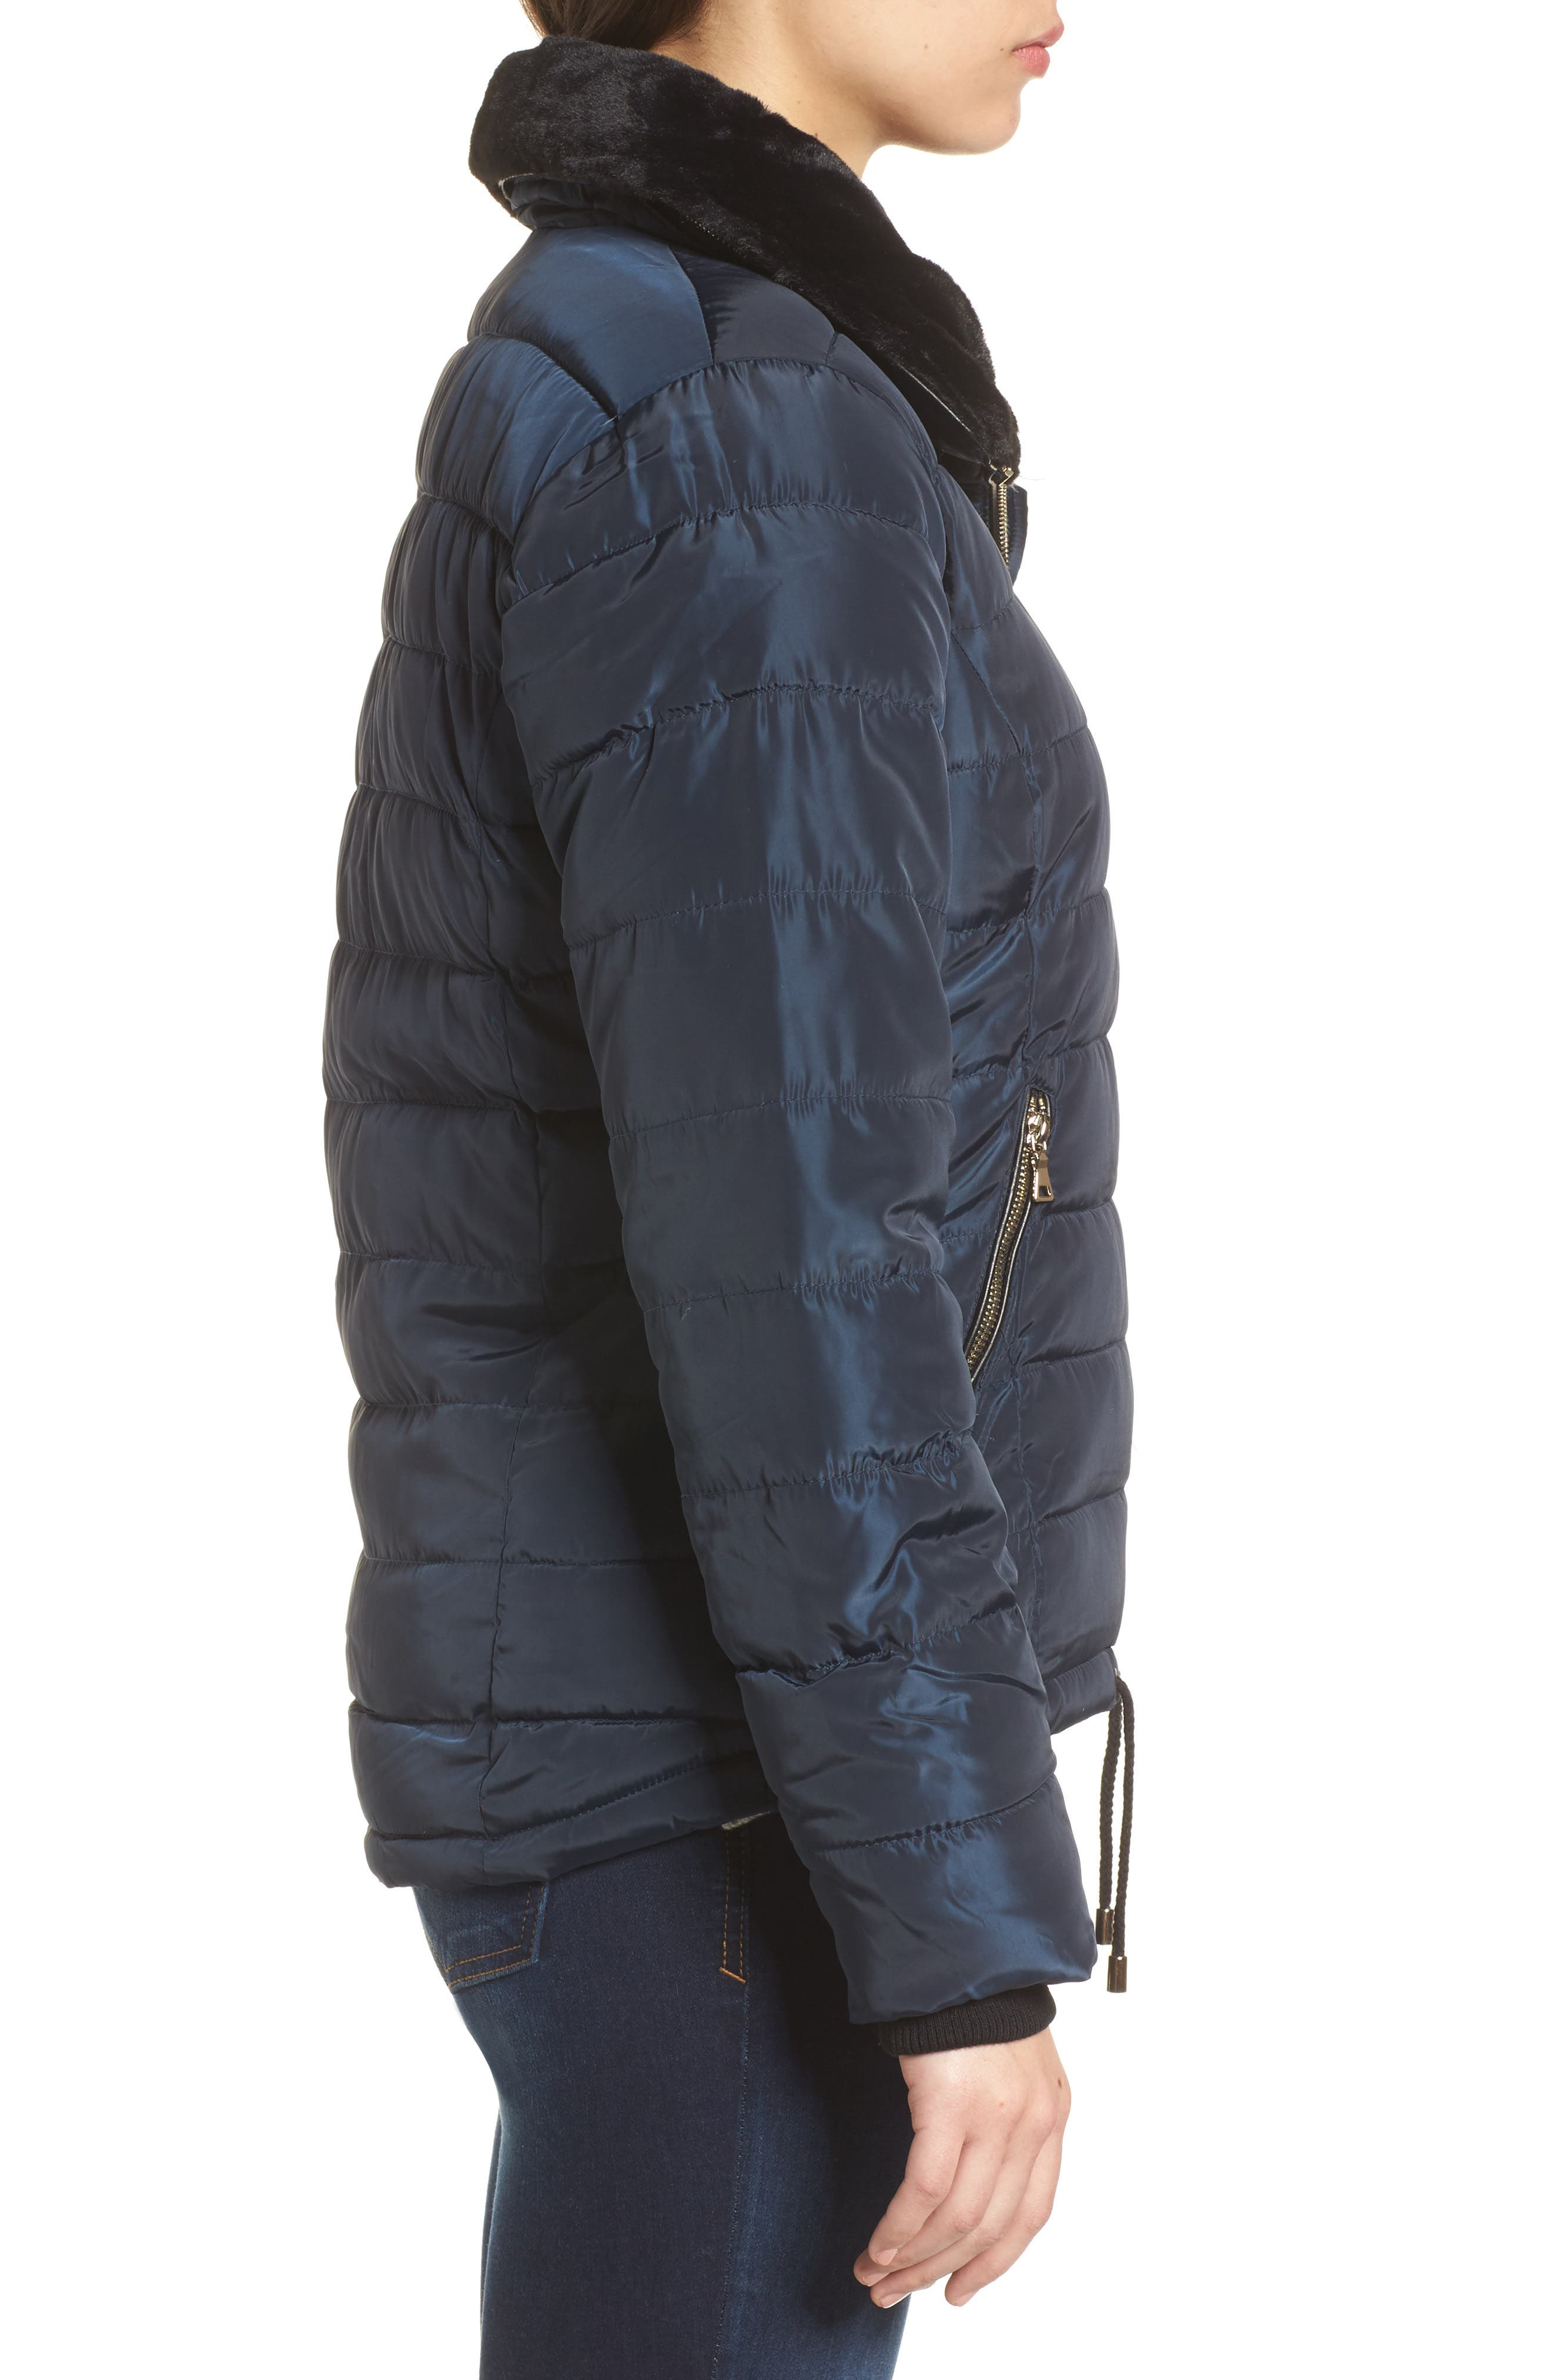 Puffer Jacket with Faux Fur Collar Lining,                             Alternate thumbnail 3, color,                             400